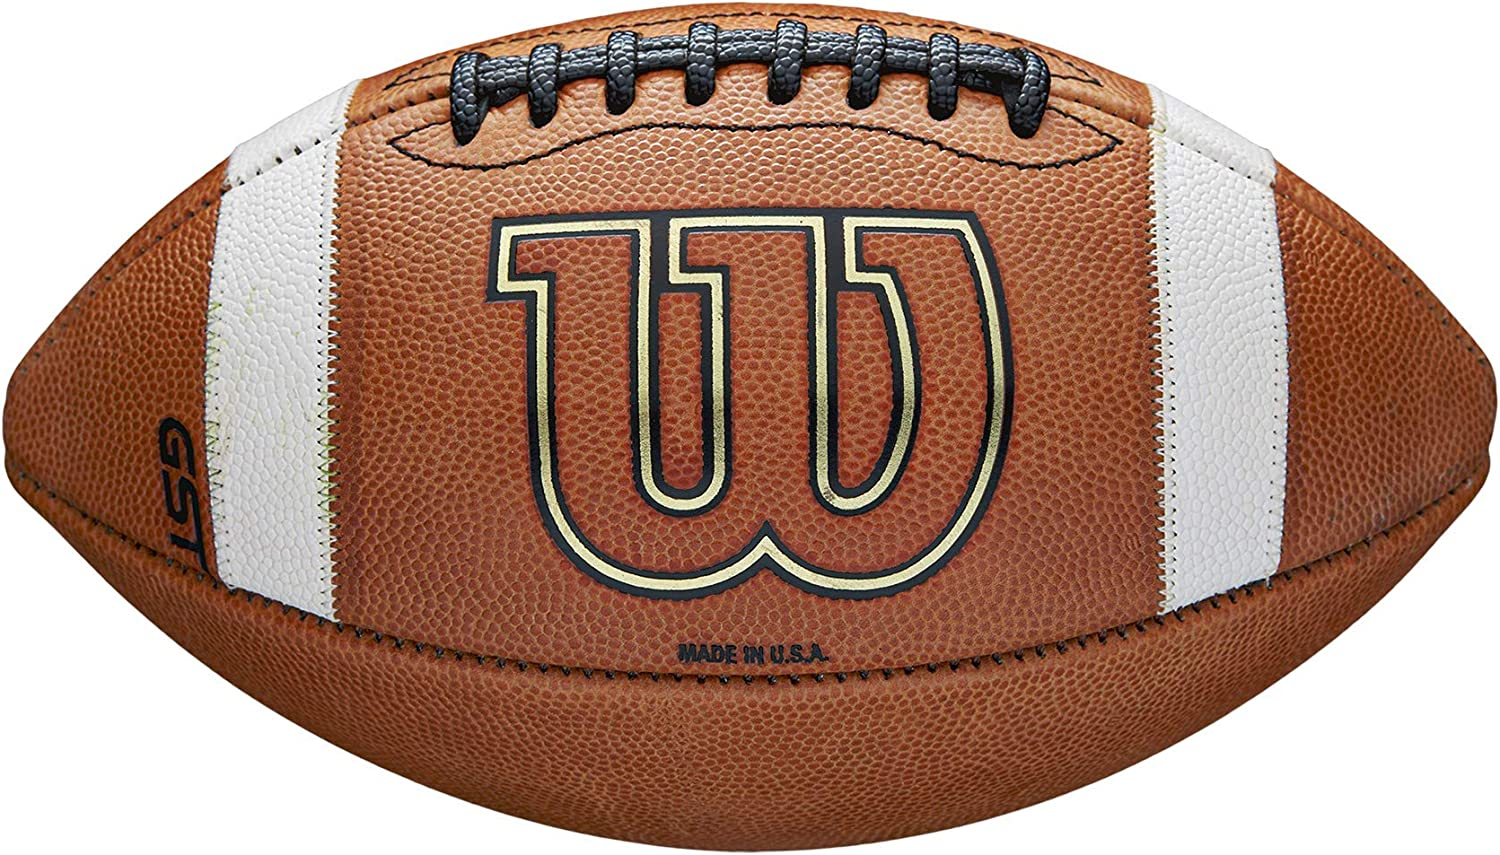 Wilson GST Official Game Football - Standard : Official Footballs : Sports & Outdoors